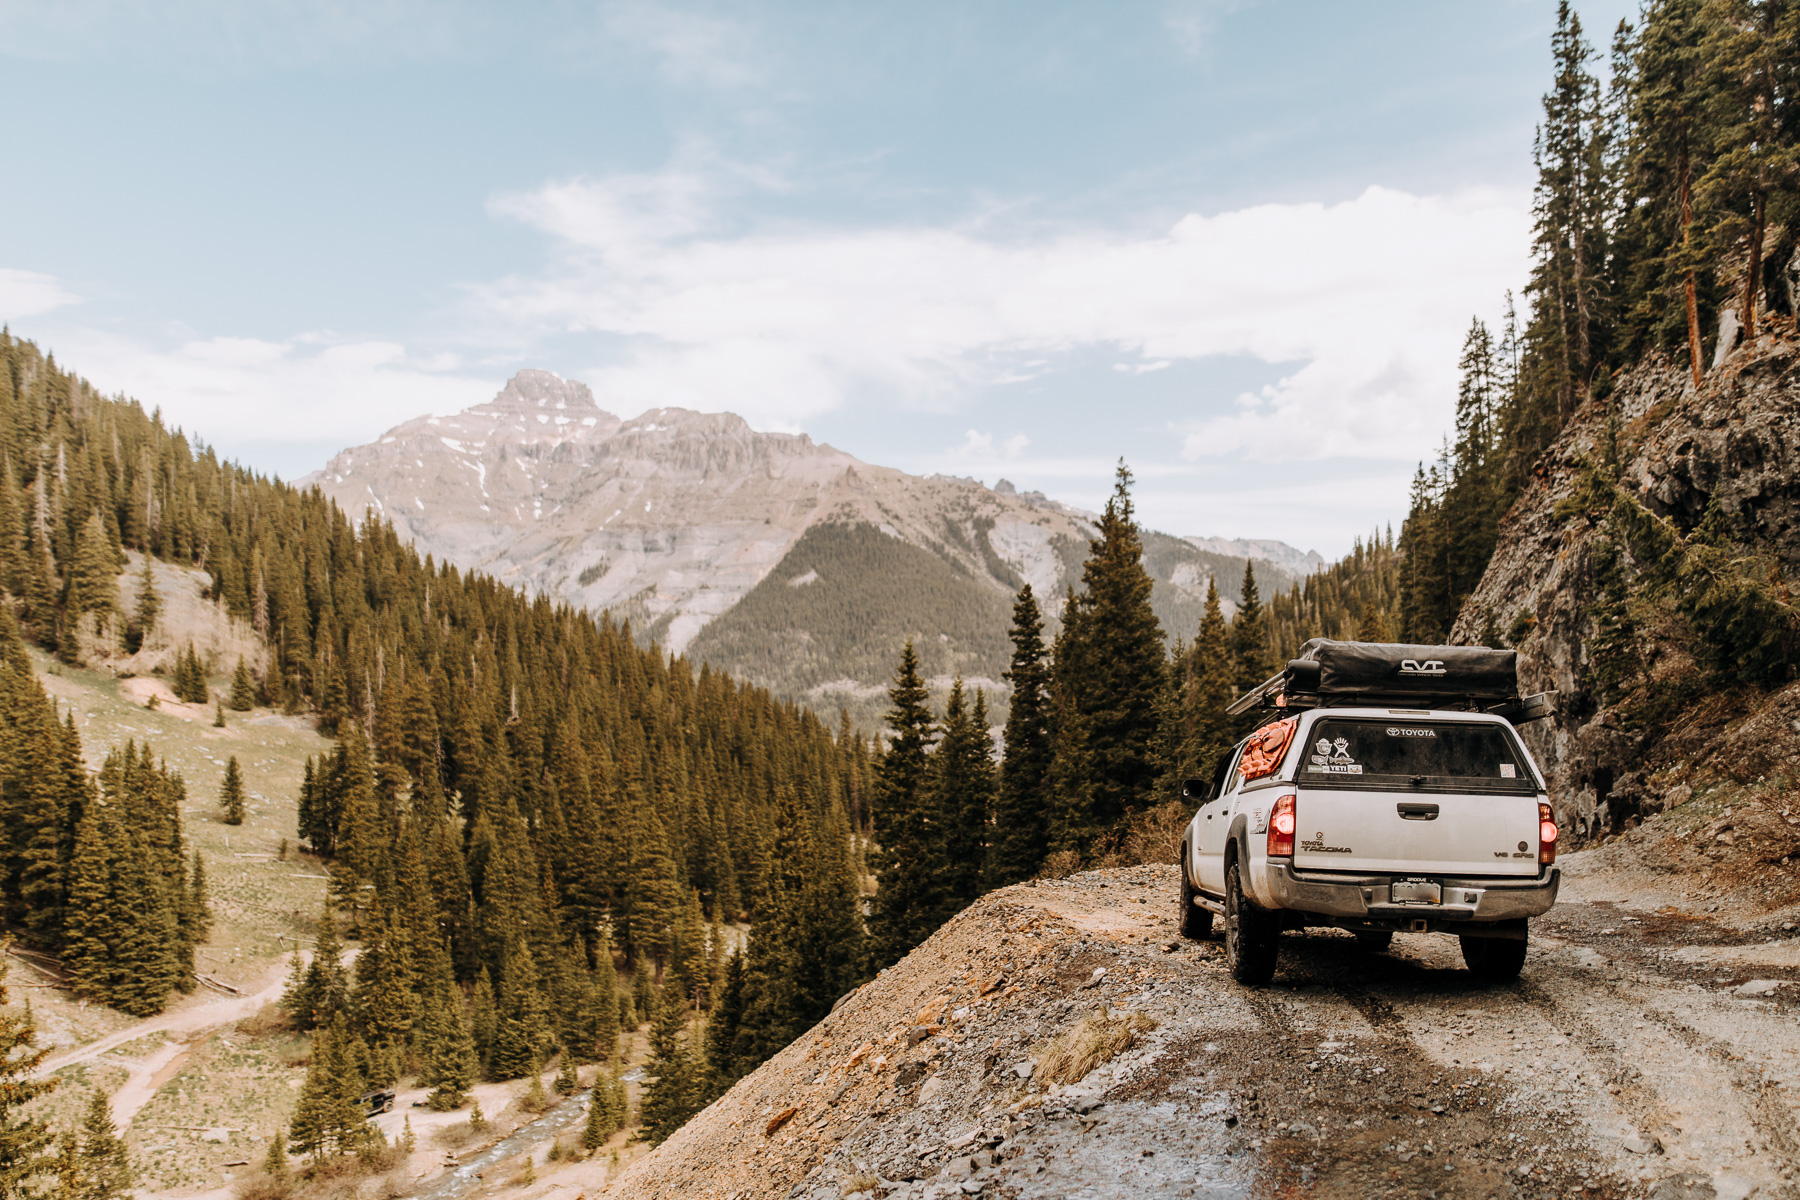 The Ultimate 10 Day Road Trip Through Colorado | Ouray and Imogene Pass